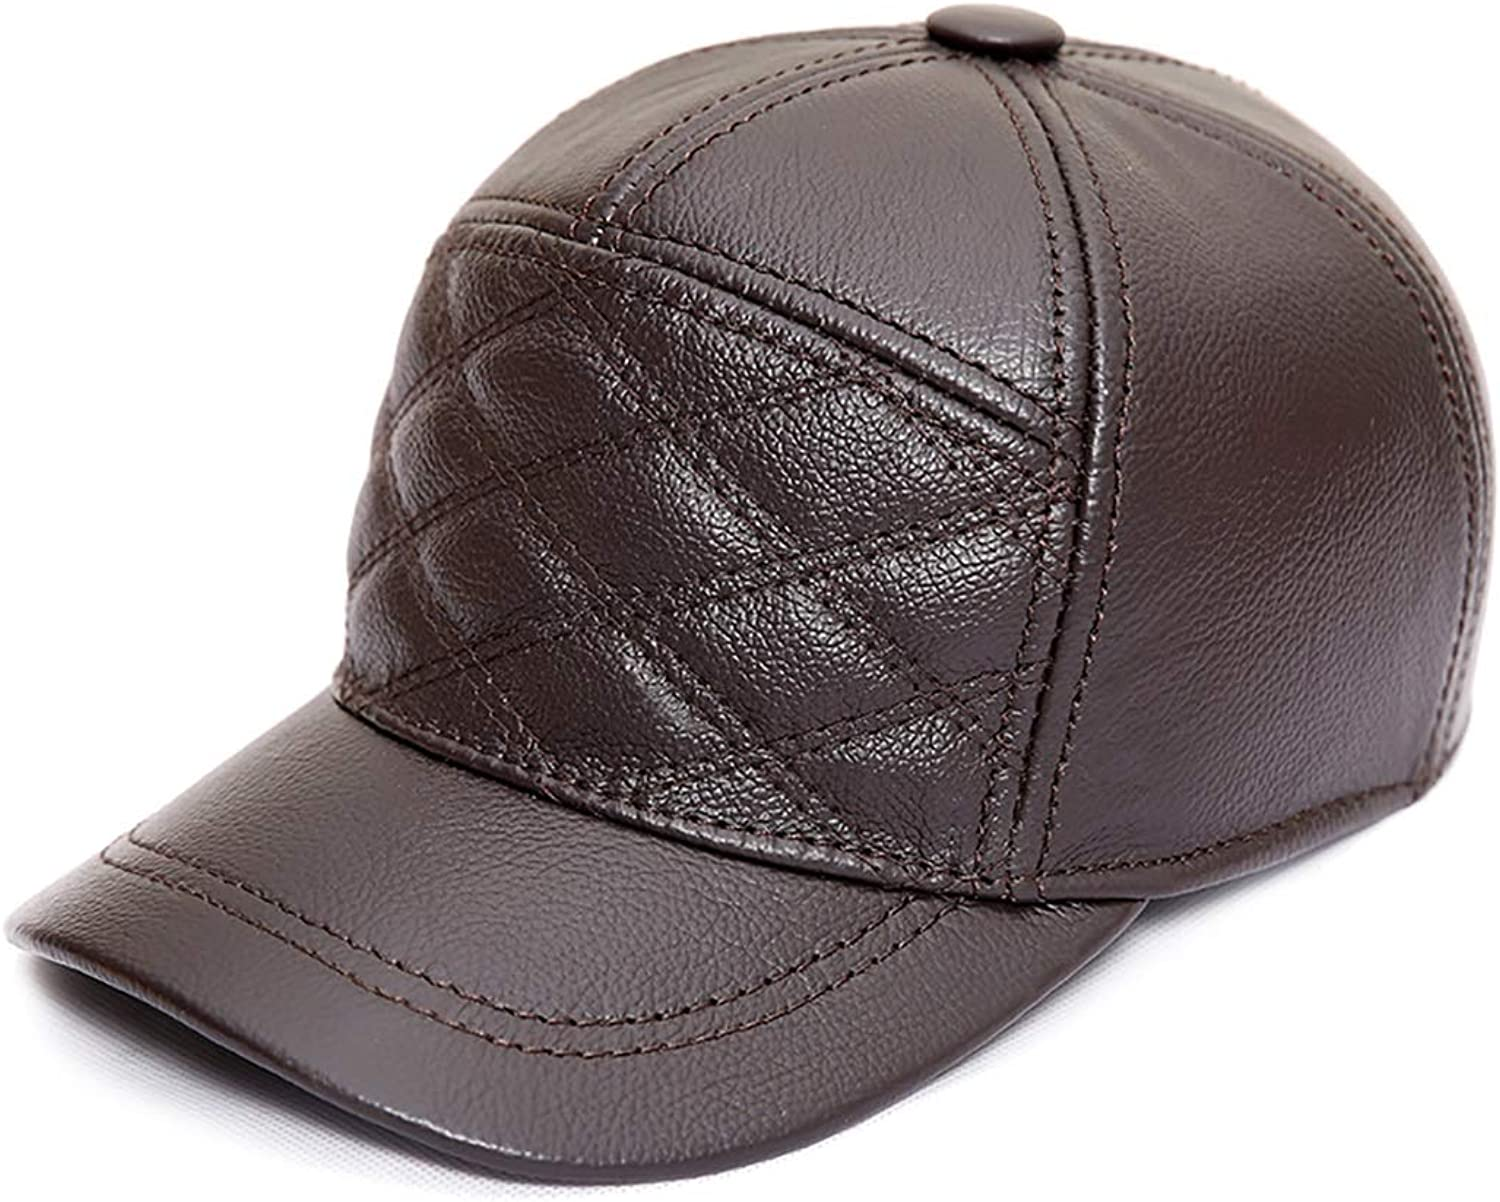 Baseball Cap Male Adult Leather Hat Autumn and Winter Warm Quilted Leather Cap Embroidered Checkered Earmuffs Artificial Plush Black, Brown